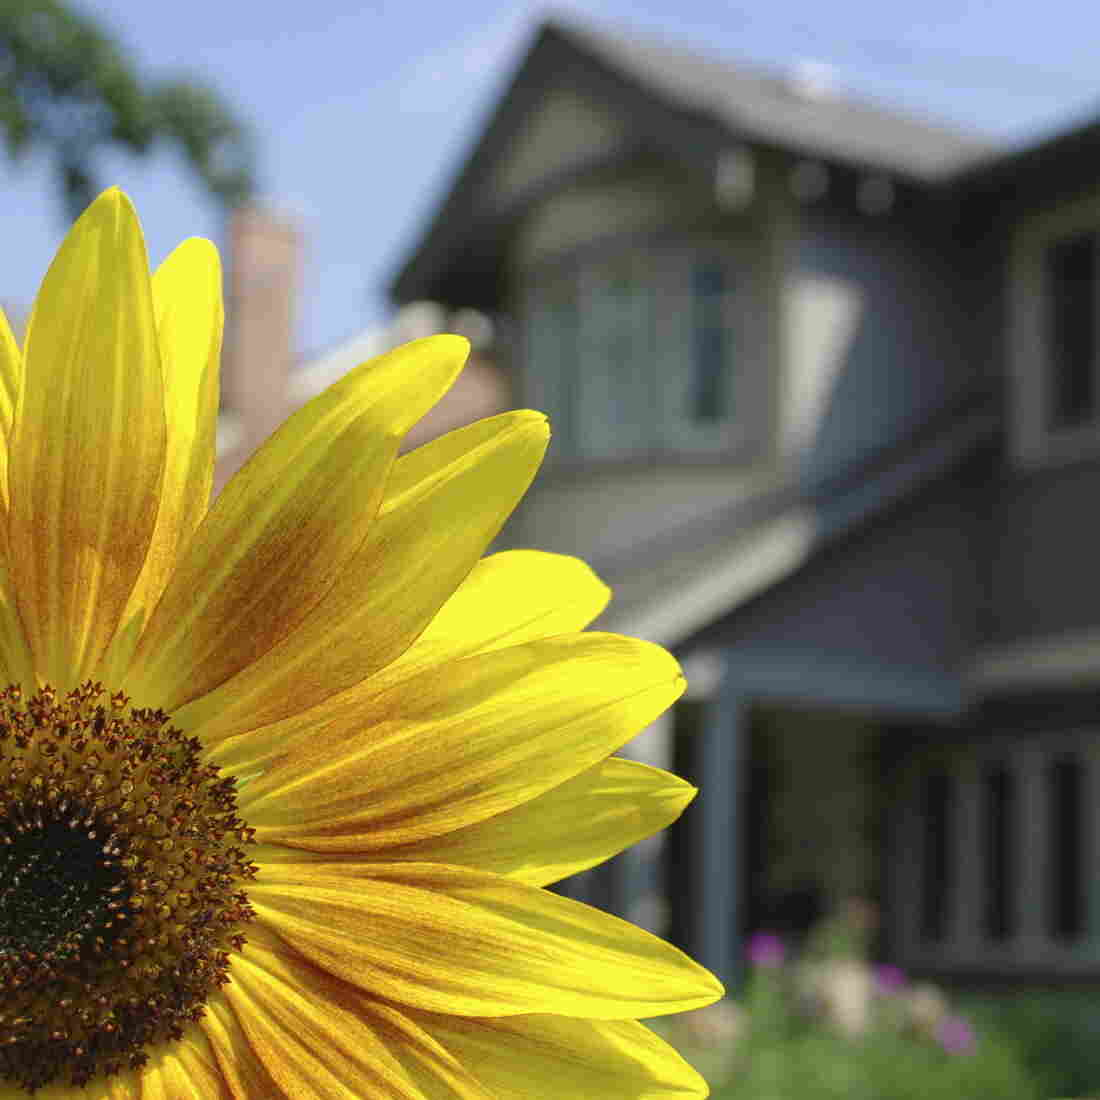 Marching Into Spring, Realtors' Hopes Rise